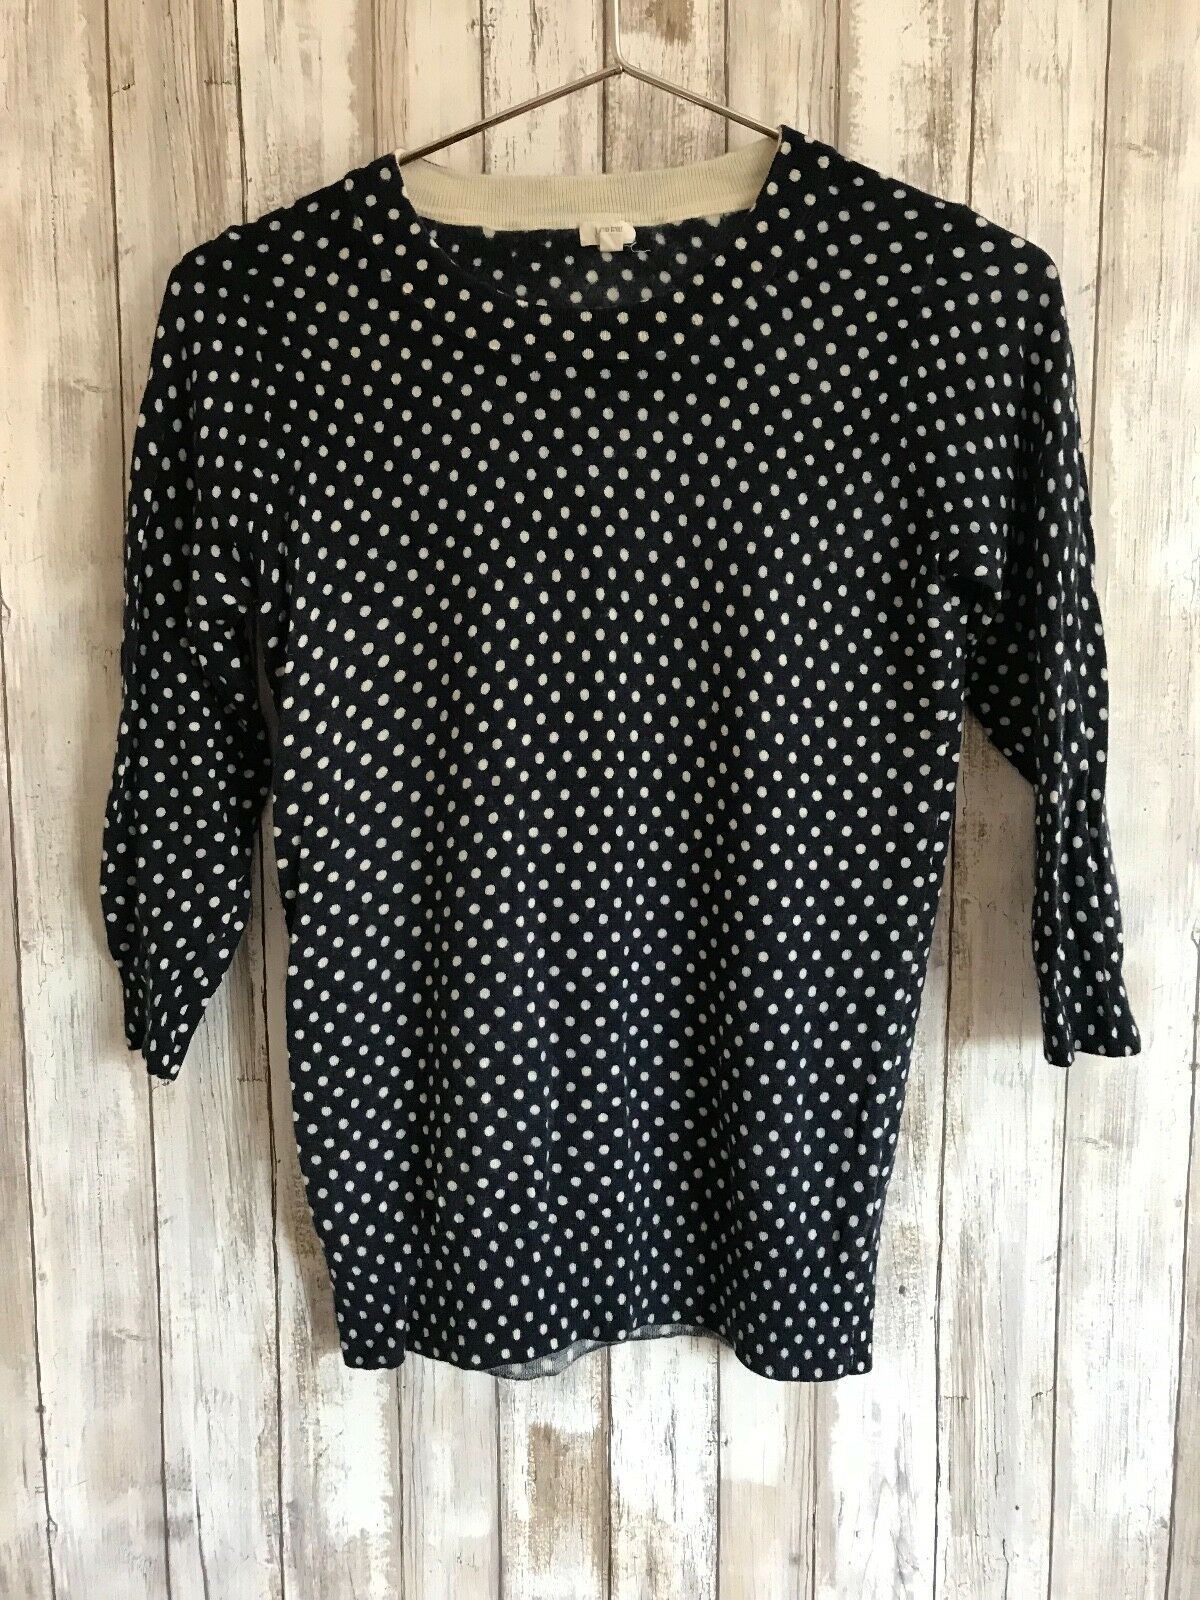 J.Crew Charley Merino Wool Polka Dot Navy bluee White Sweater S Small